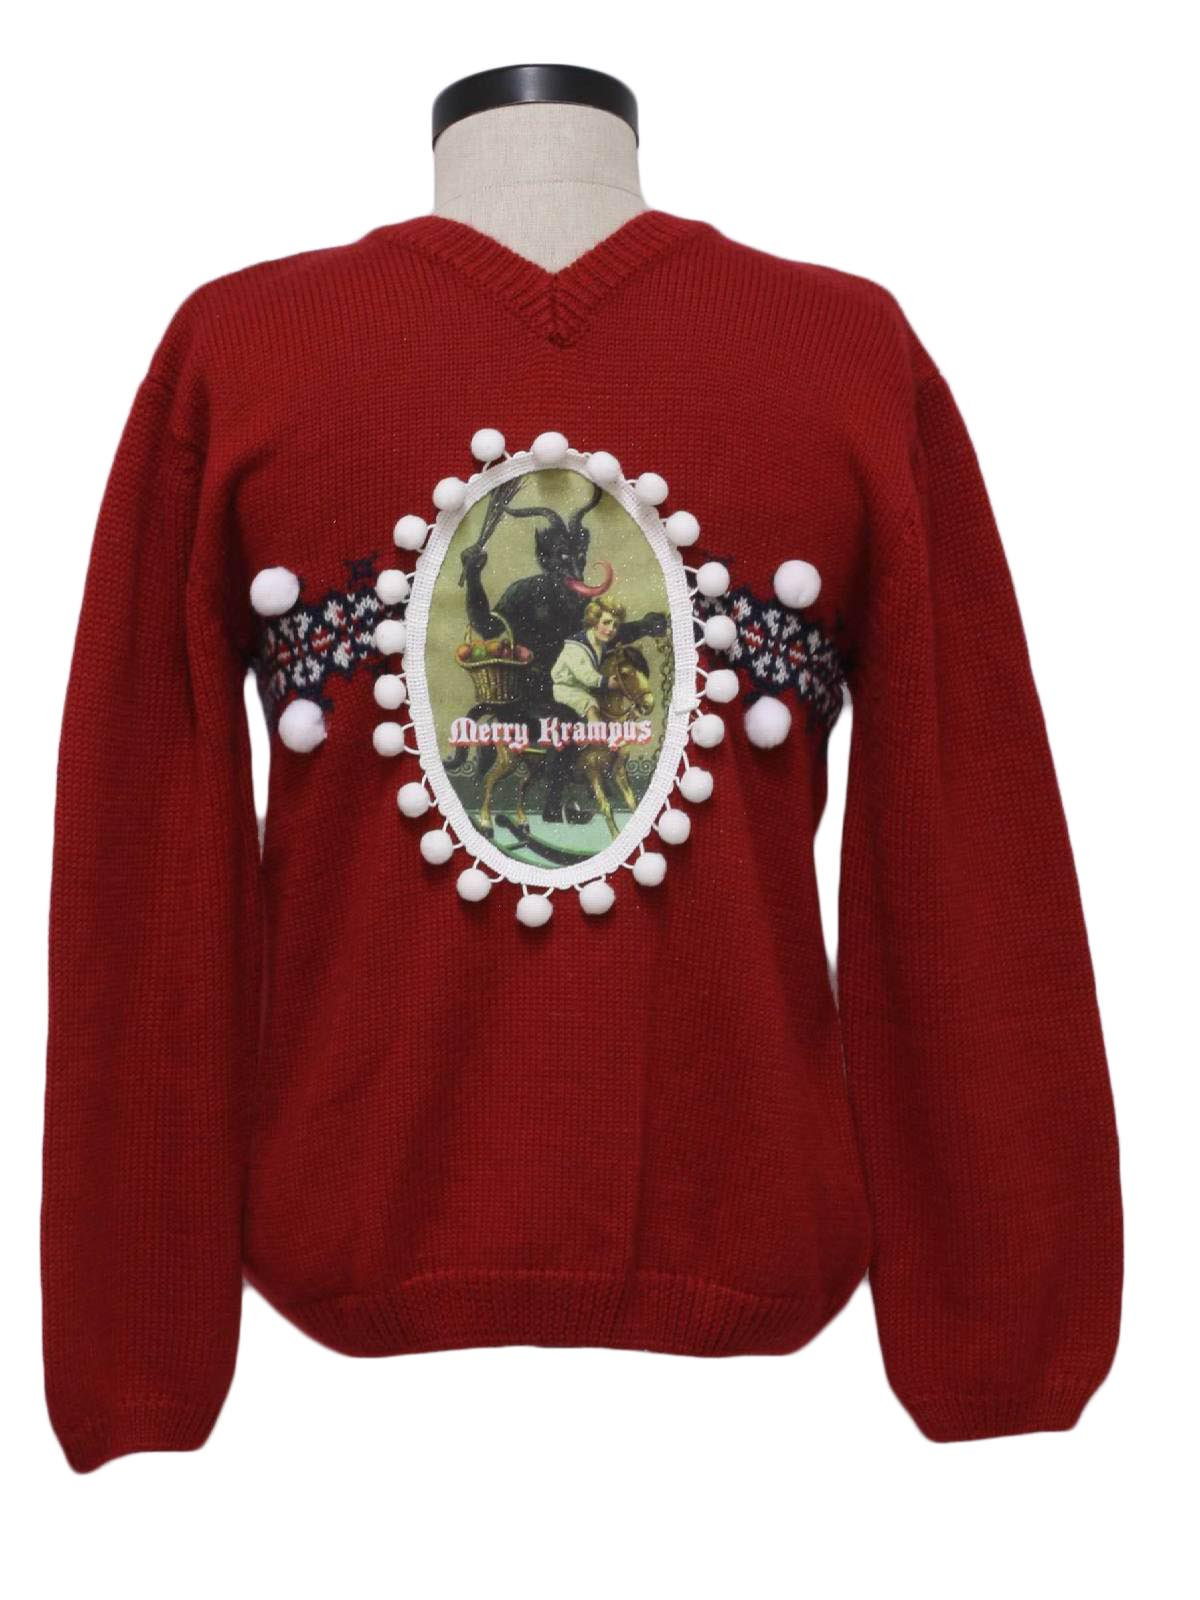 womens or girls ugly krampus christmas sweater old navy scare the little kiddies with your very own krampus sweater in european legend krampus travels